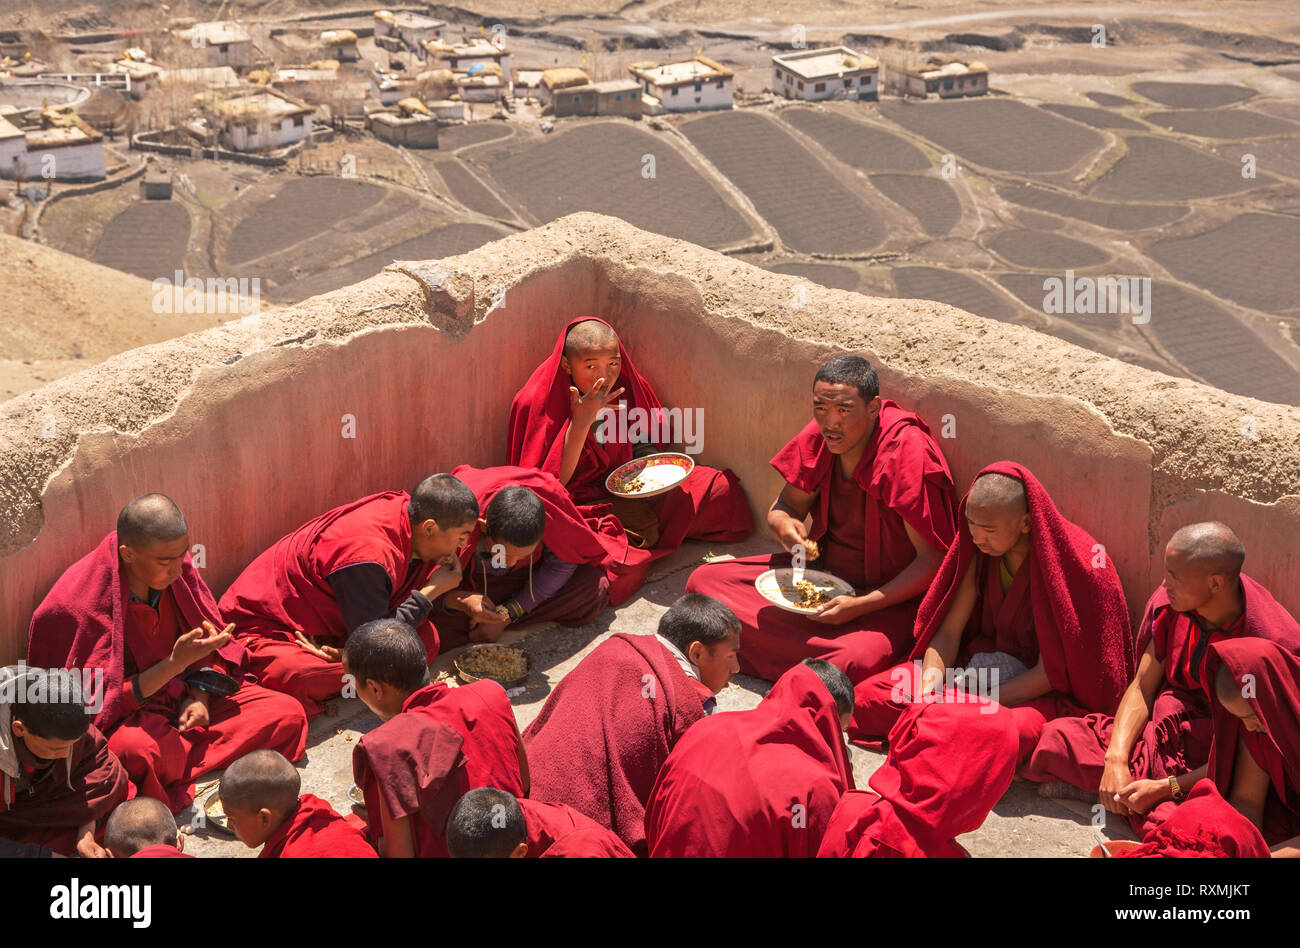 SPITI, INDIA - APRIL 28, 2016: group of young monks practicing Tibetan Buddhism have breakfast on the roof of the Key Monastery in Spiti, India on Apr - Stock Image